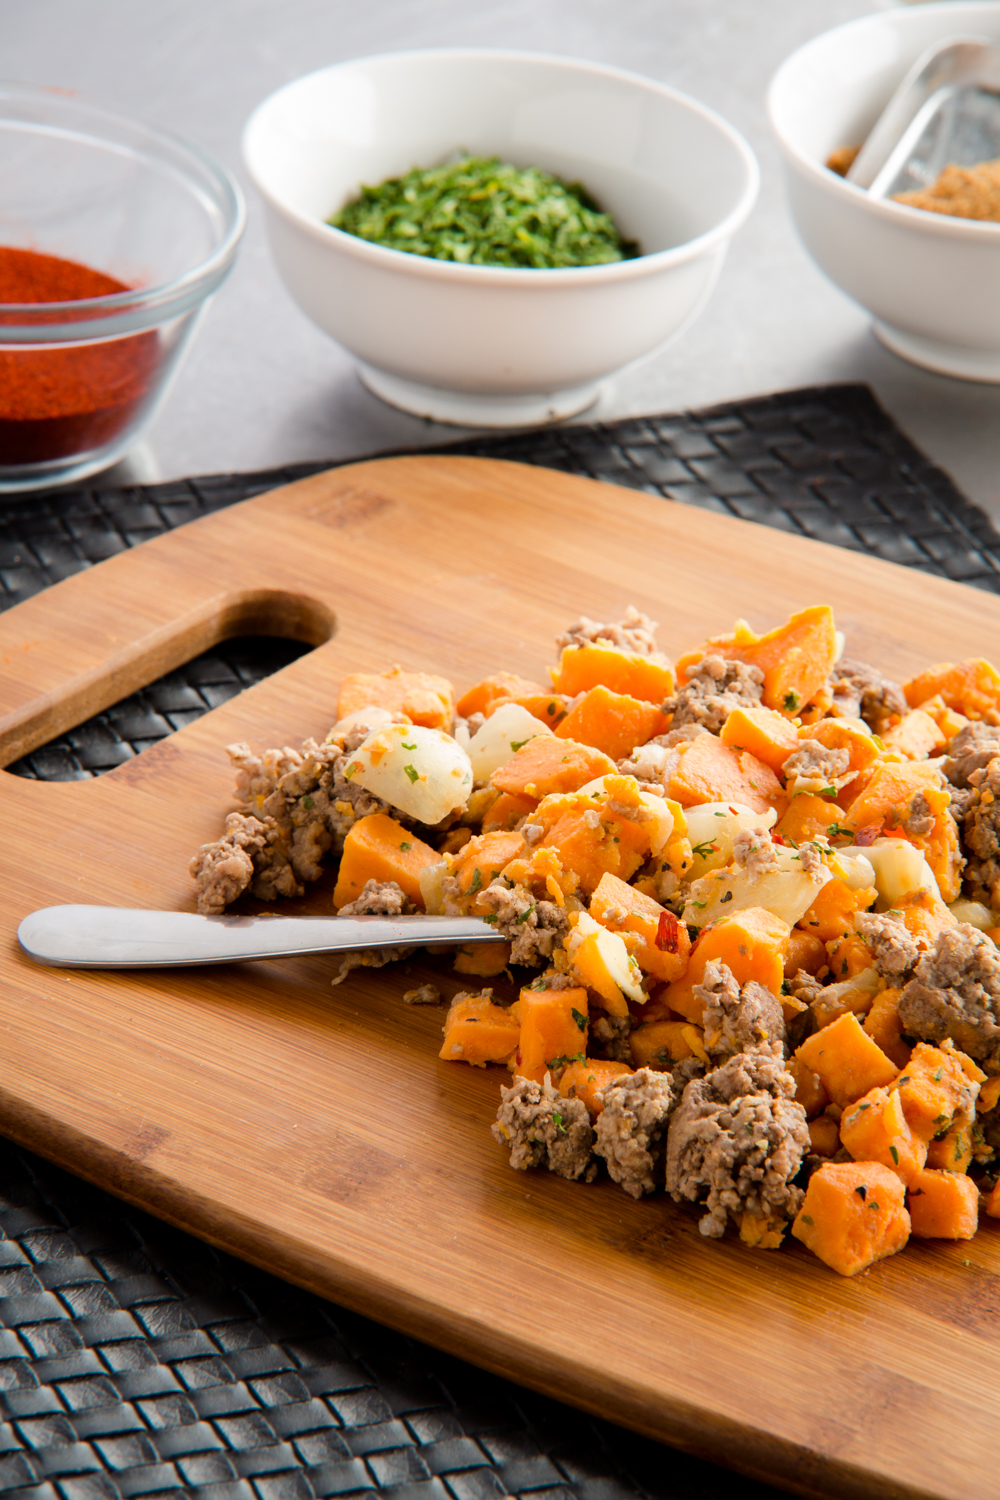 Sweet Potato Hash   Calories: 374  Protein: 39g  Carbohydrates: 25g  Fat: 11g  Sugar: 4g  Gluten Free  Ingredients: Ground beef seasoned with crushed pepper flakes, garlic, natural raw sugar, pepper and salt. Sautéed until golden brown and folded together with sweet potatoes that are diced and lightly salted.